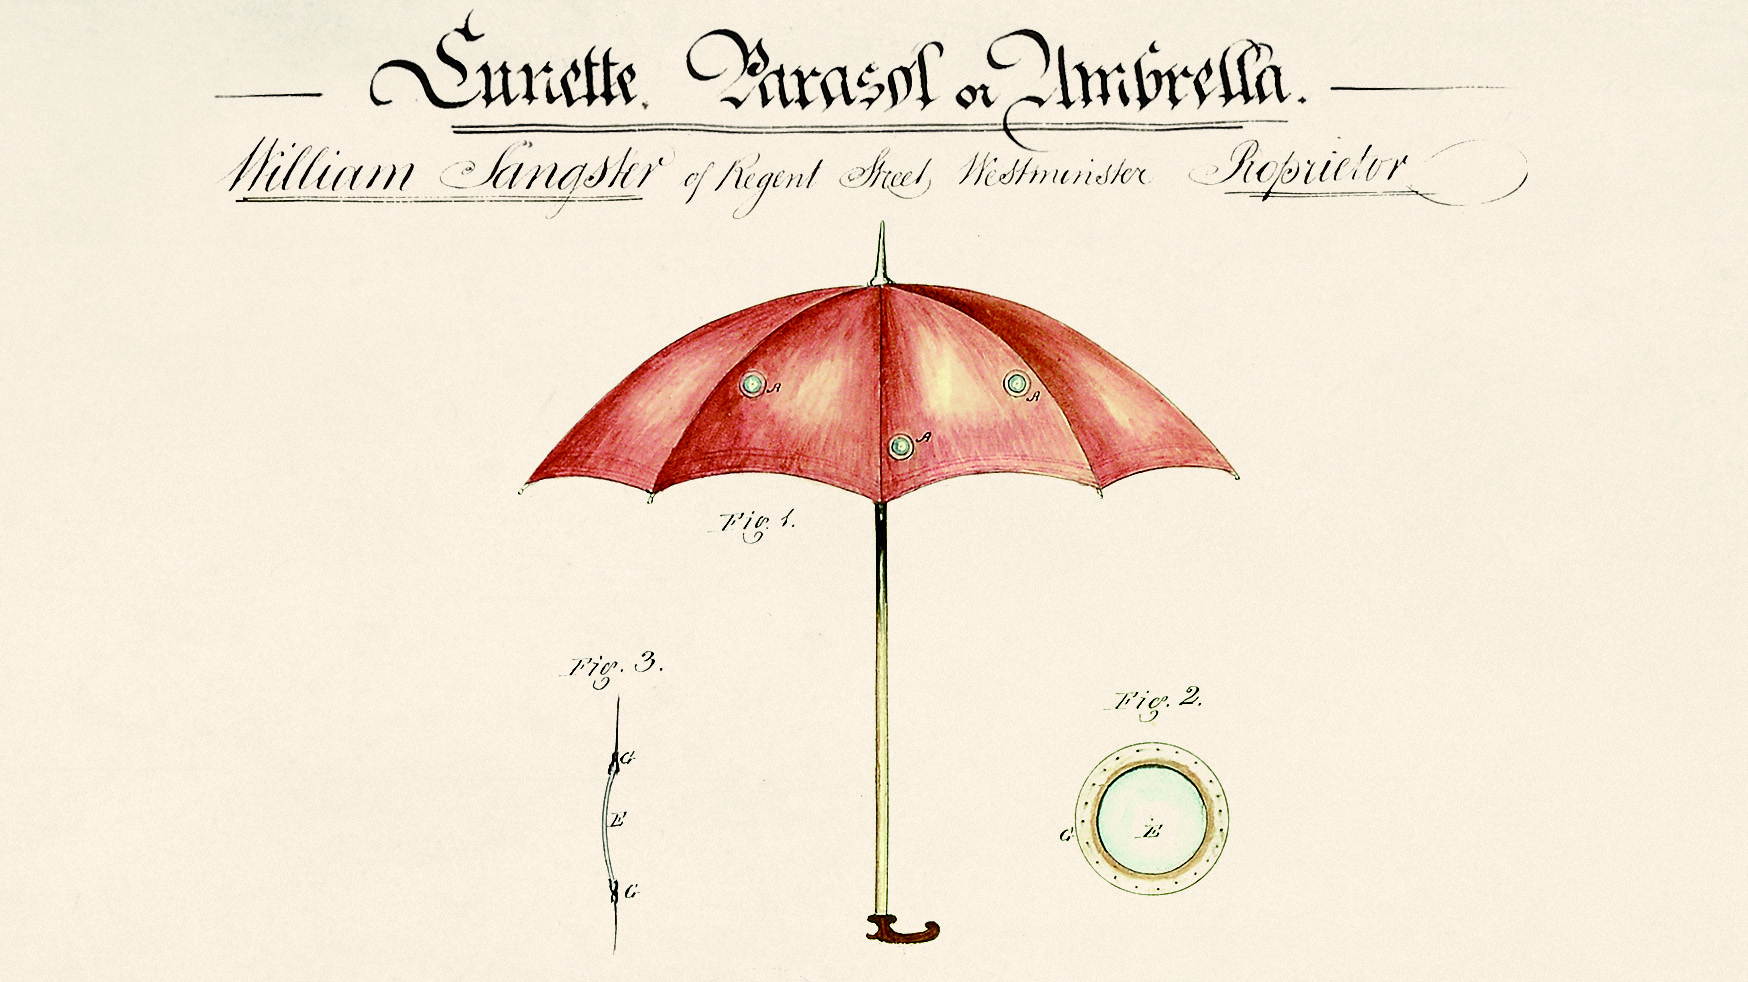 Design drawing of an umbrella with peepholes